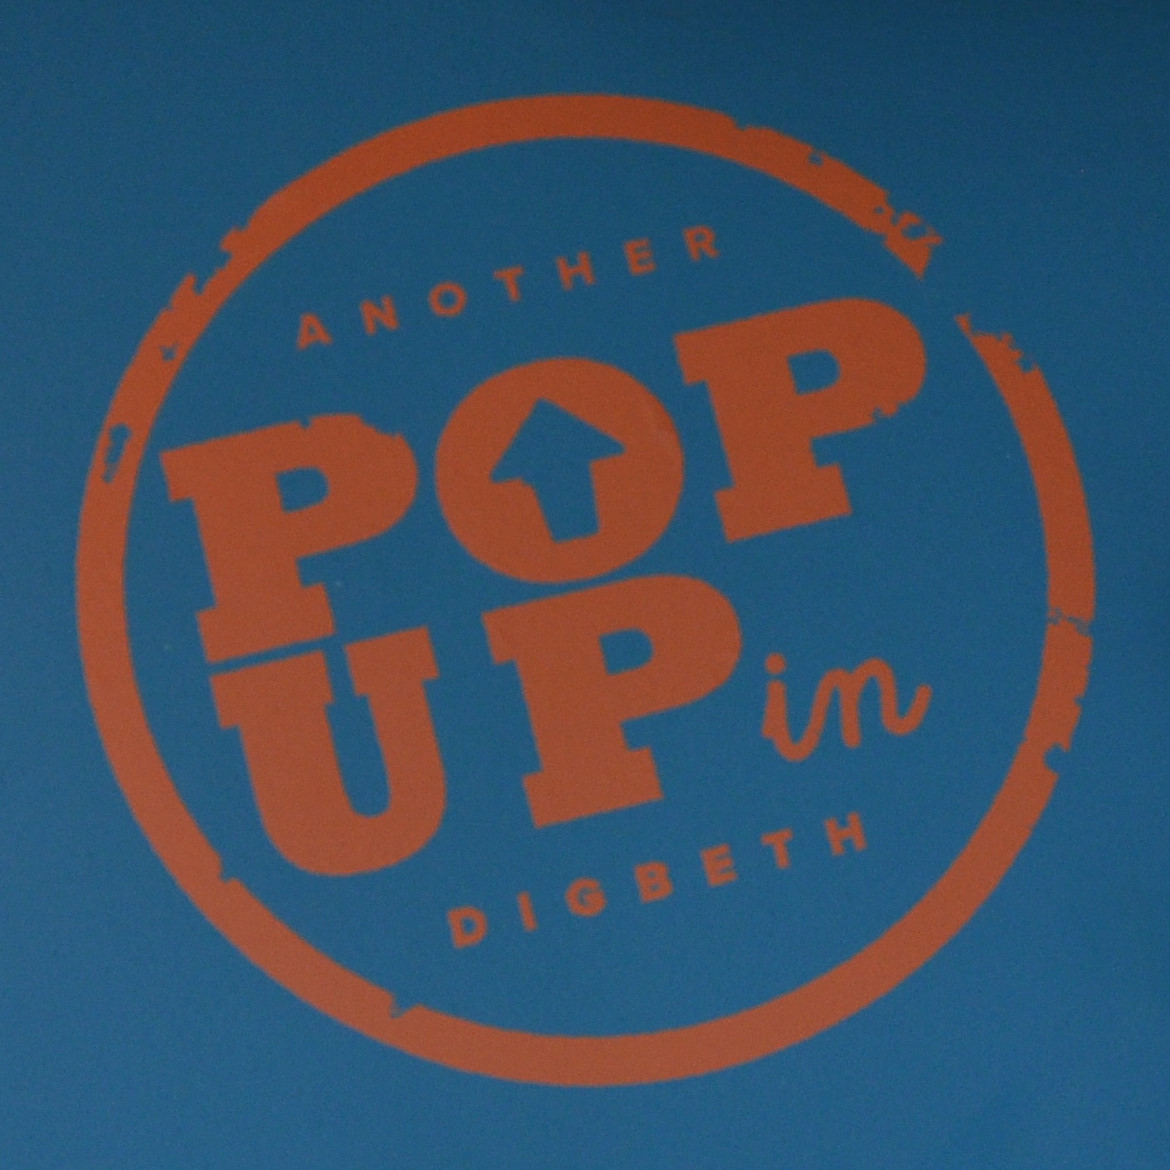 """The words """"Another Pop Up in Digbeth"""" written in orange inside an orange circle on a blue background. POP UP is in capitals, with the space in the O replaced by an upwards-pointing arrow."""